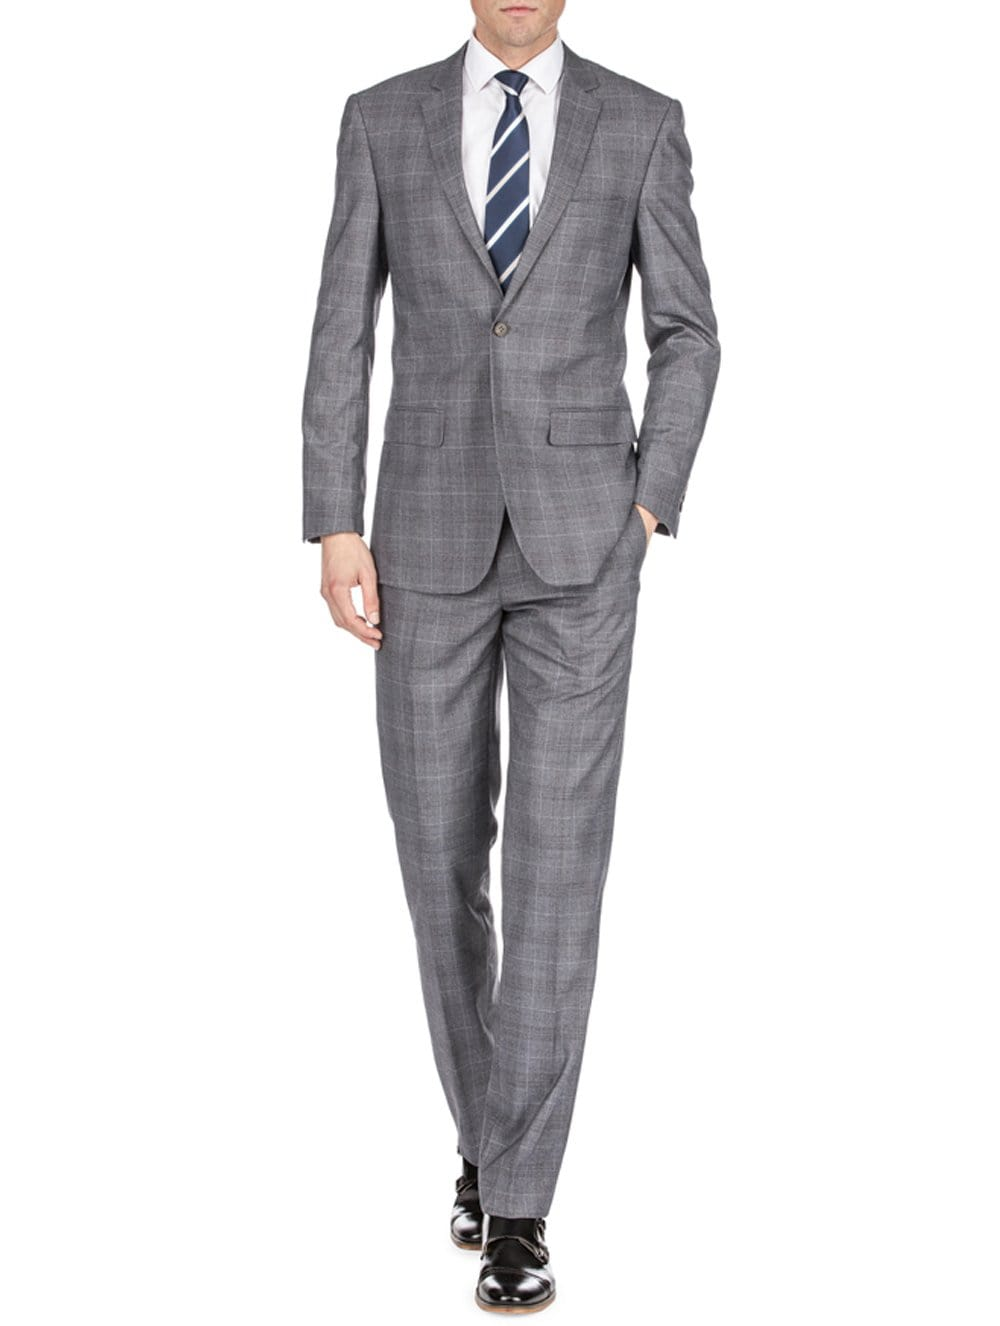 DAILY HAUTE Men's Suits GRAY / 36Rx30W Gino Vitale Men's Harrogate Windowpane Slim Fit 2PC Suits